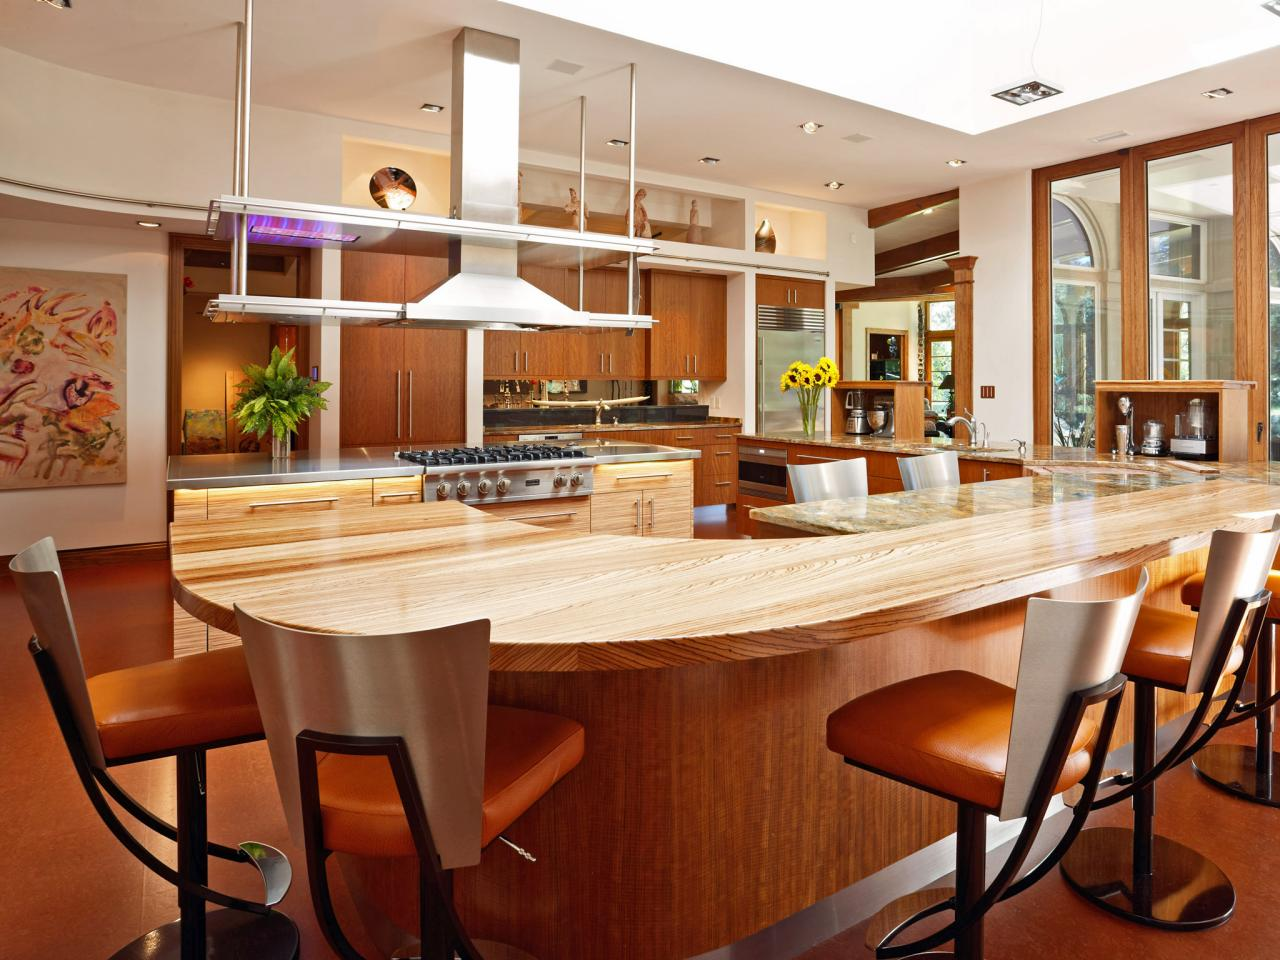 Huge Kitchen Island Larger Kitchen Islands Pictures Ideas & Tips From Hgtv  Hgtv